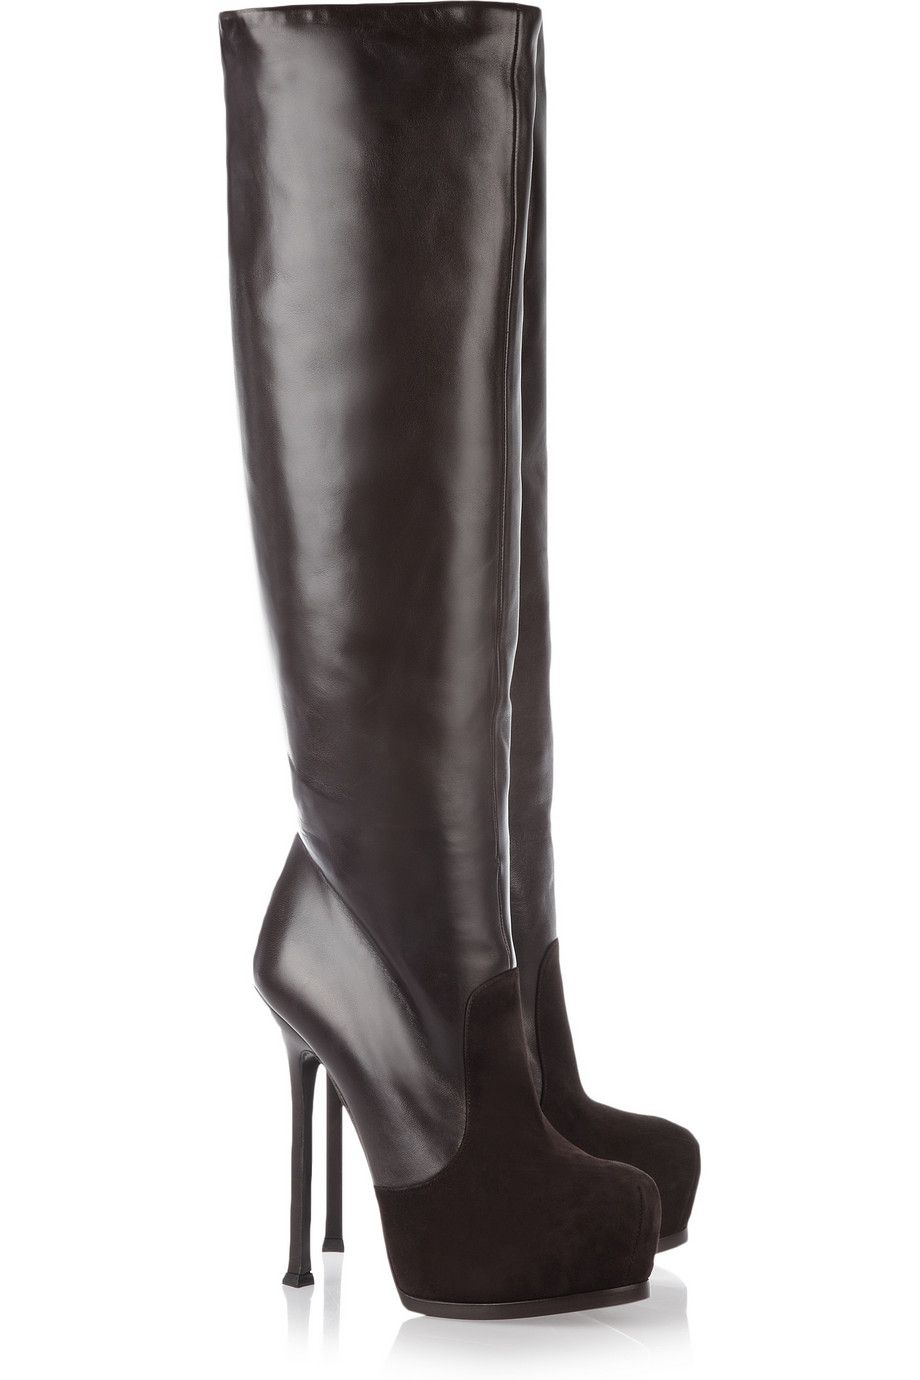 8921fc29fd9 YVES SAINT LAURENT Tribtoo leather and suede knee boots | Shameless ...